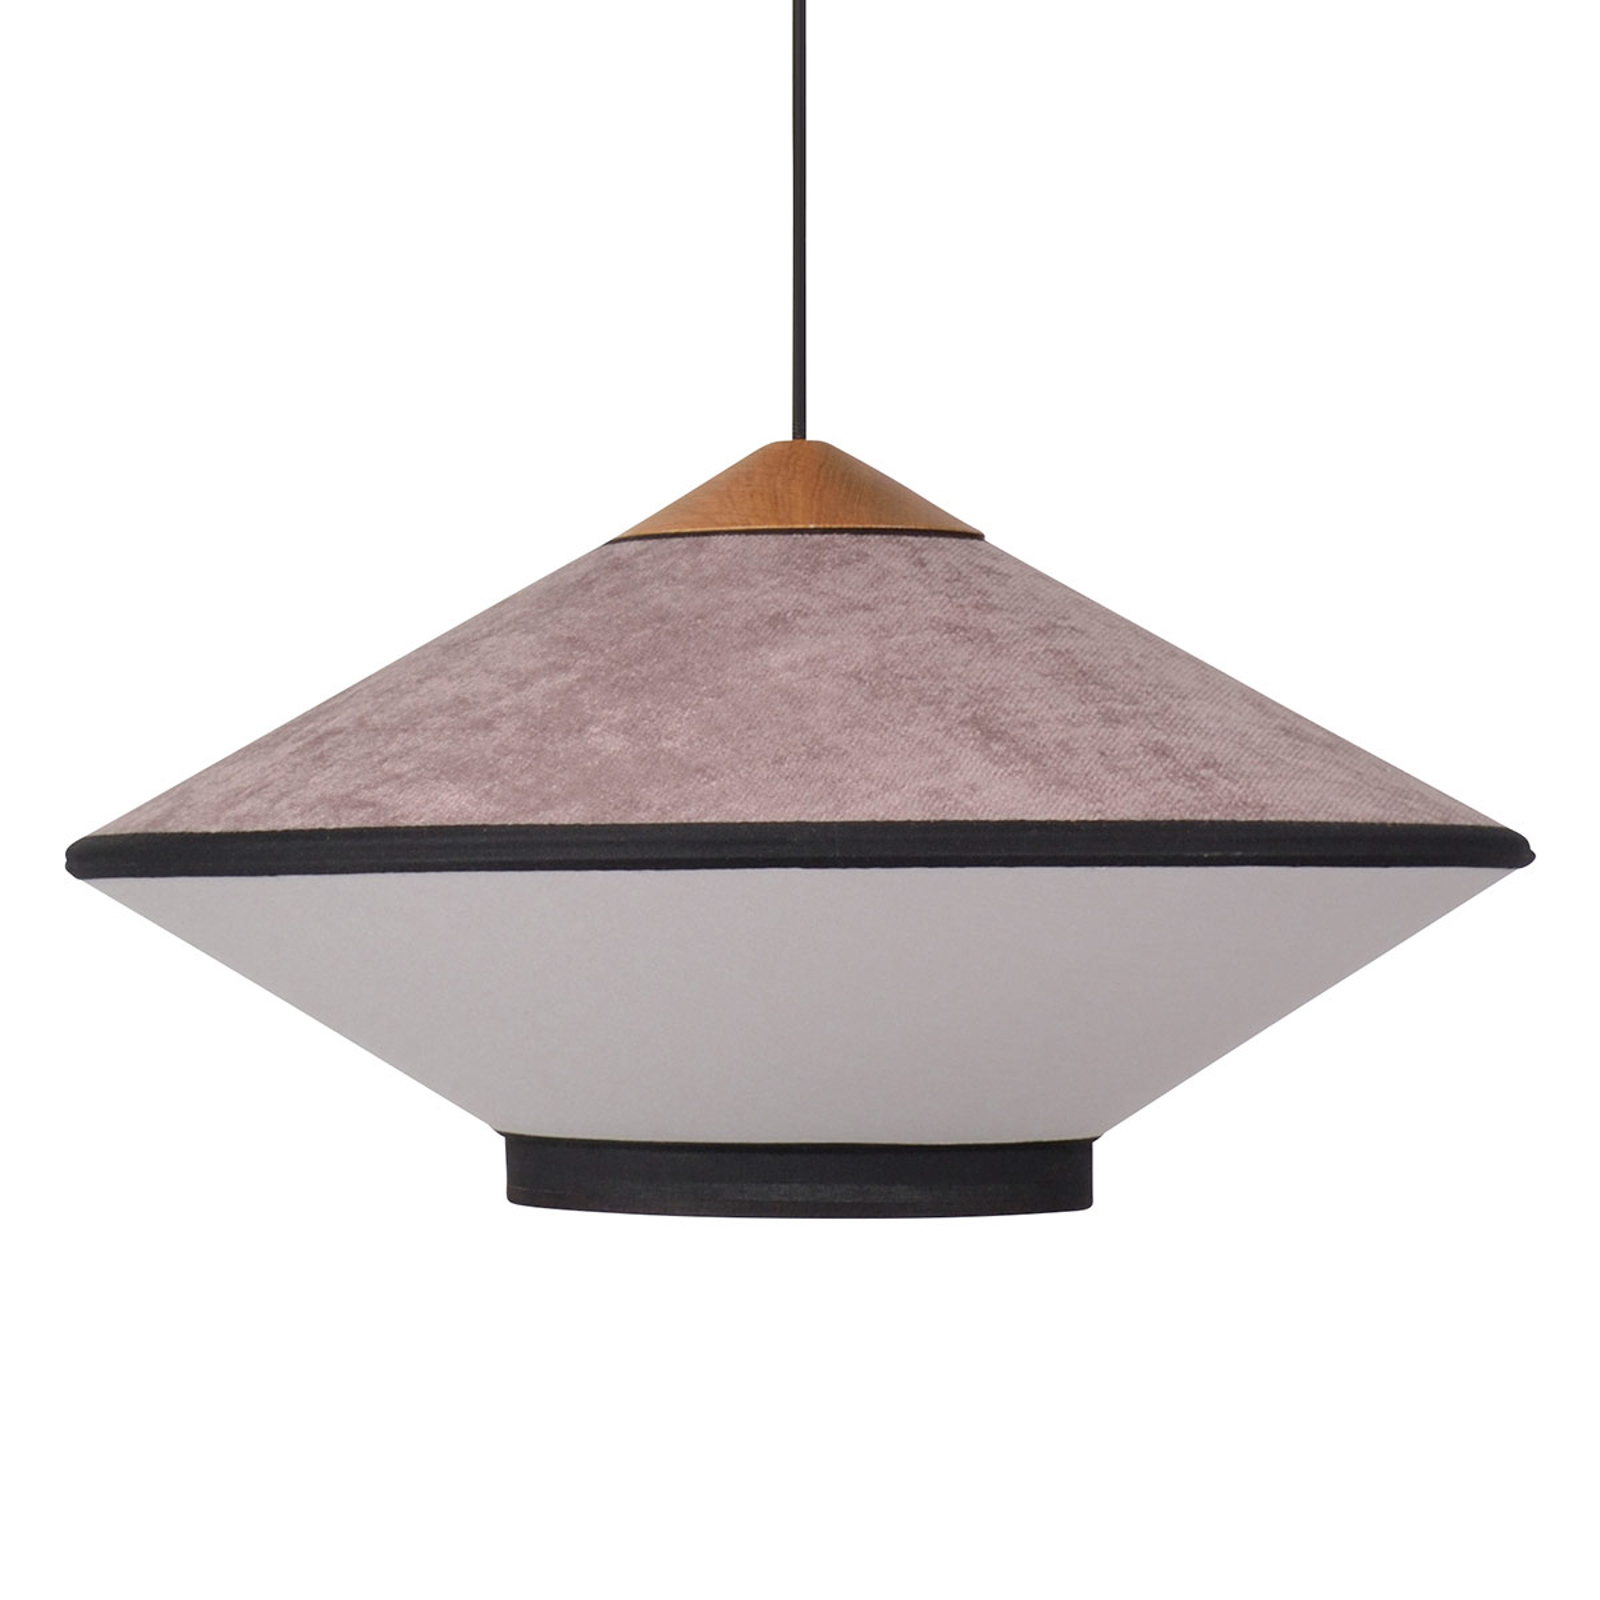 Forestier Cymbal S hanglamp 50cm pink